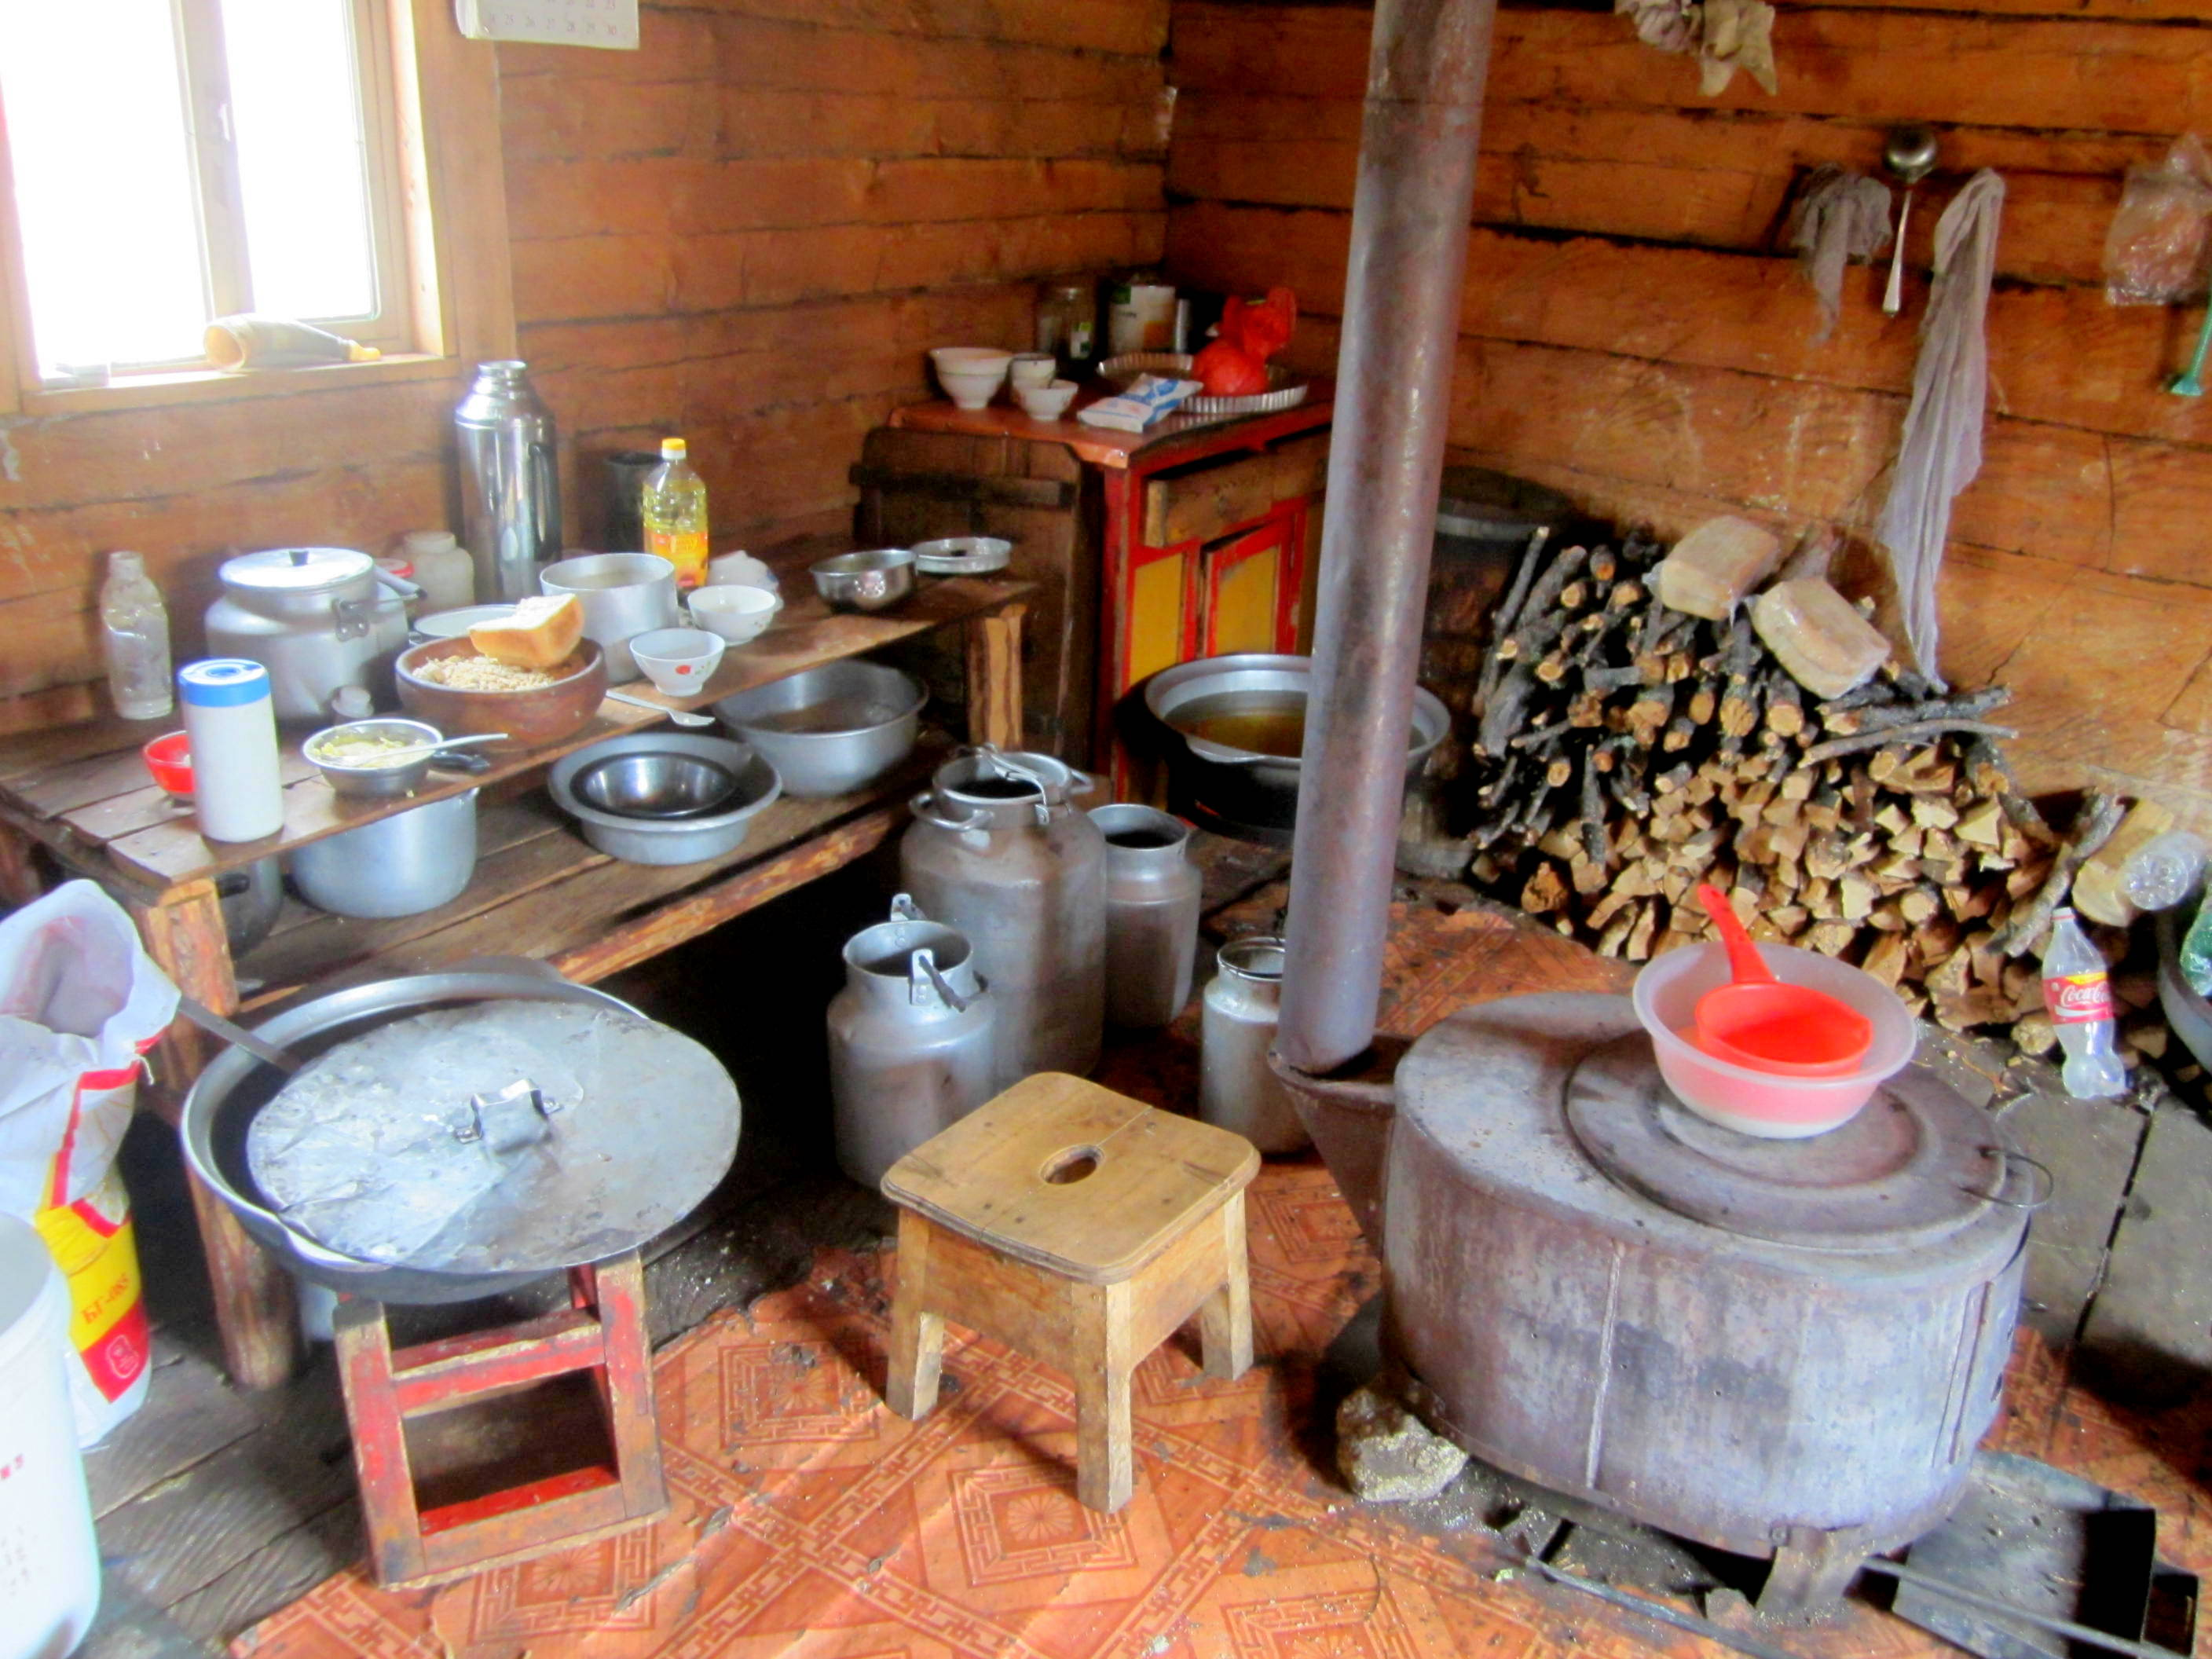 Inside Ut's home, northern Mongolia